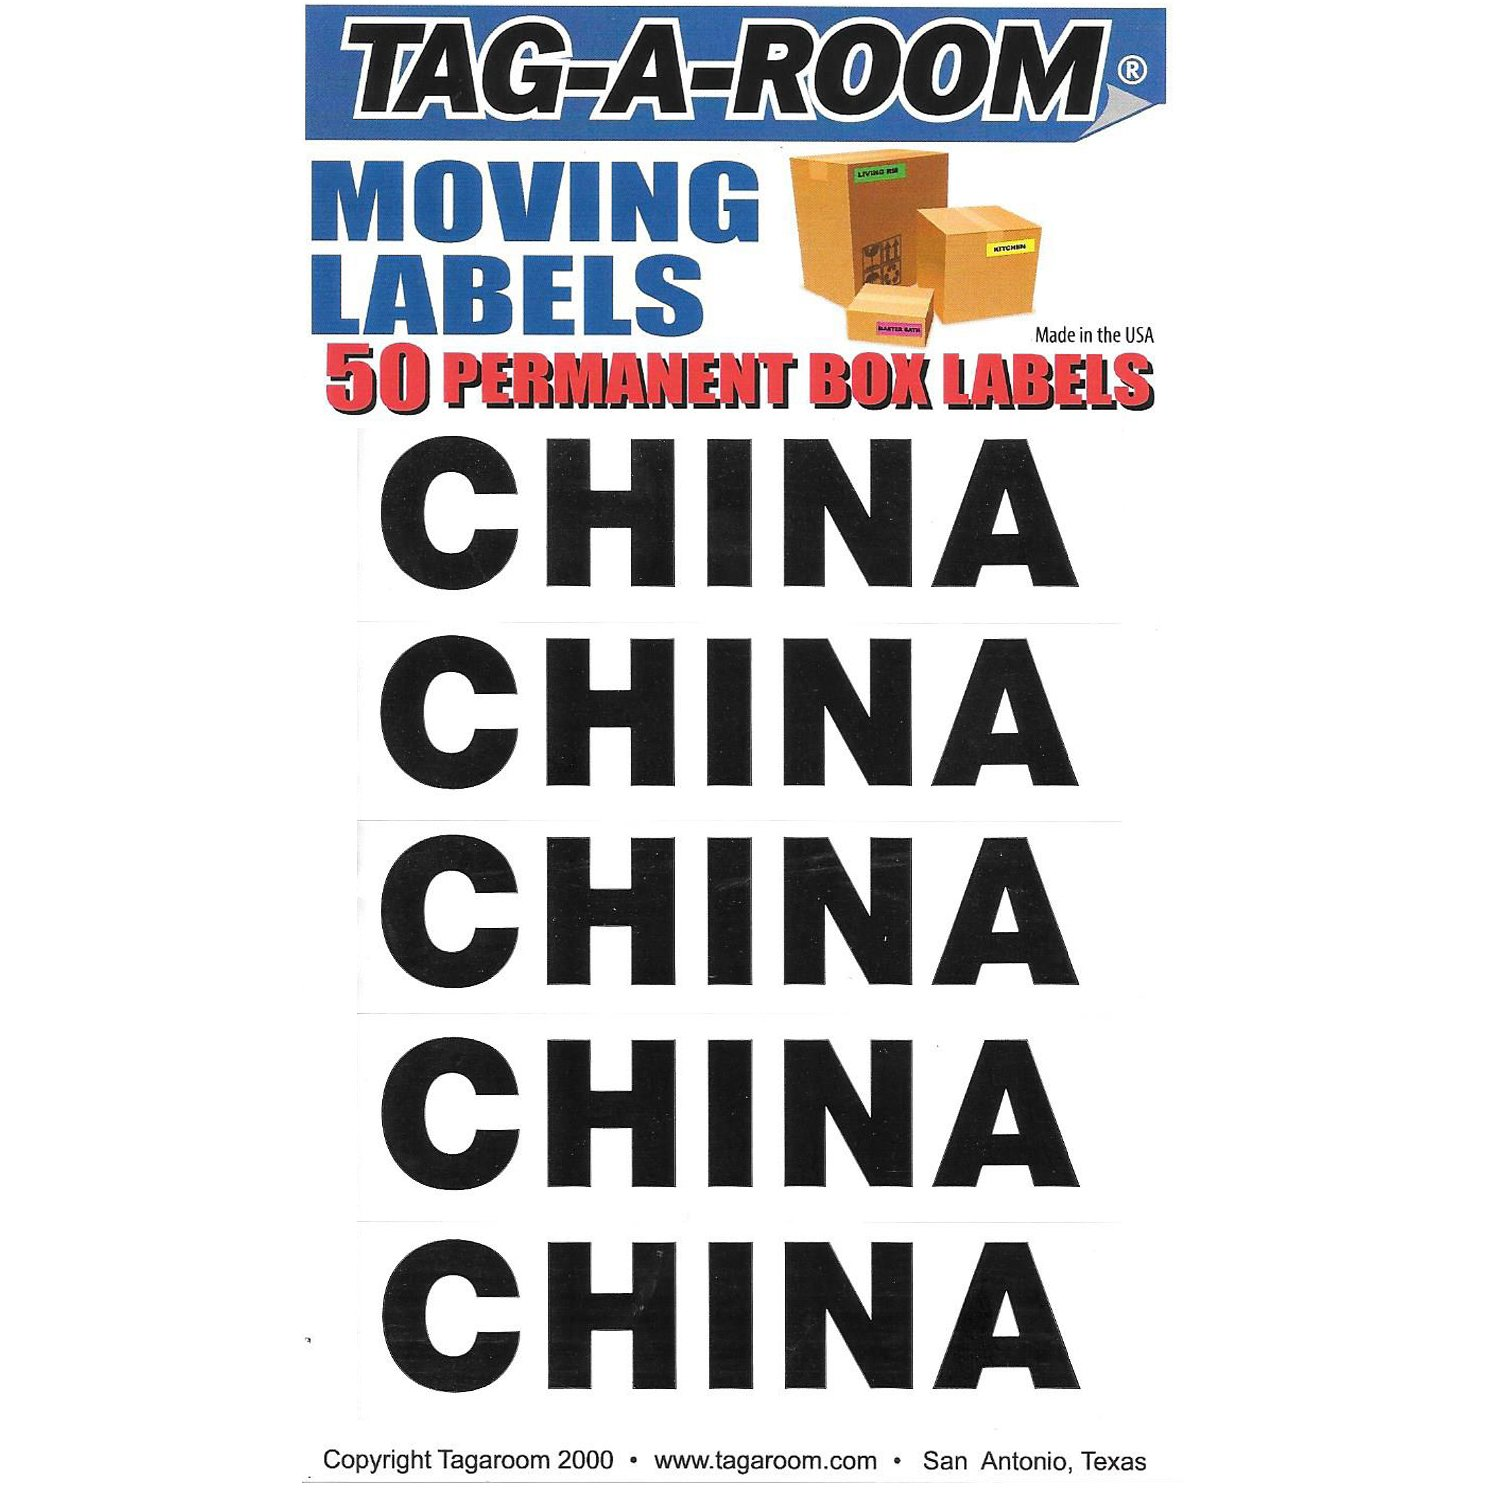 Tag-A-Room Box Content Moving Label